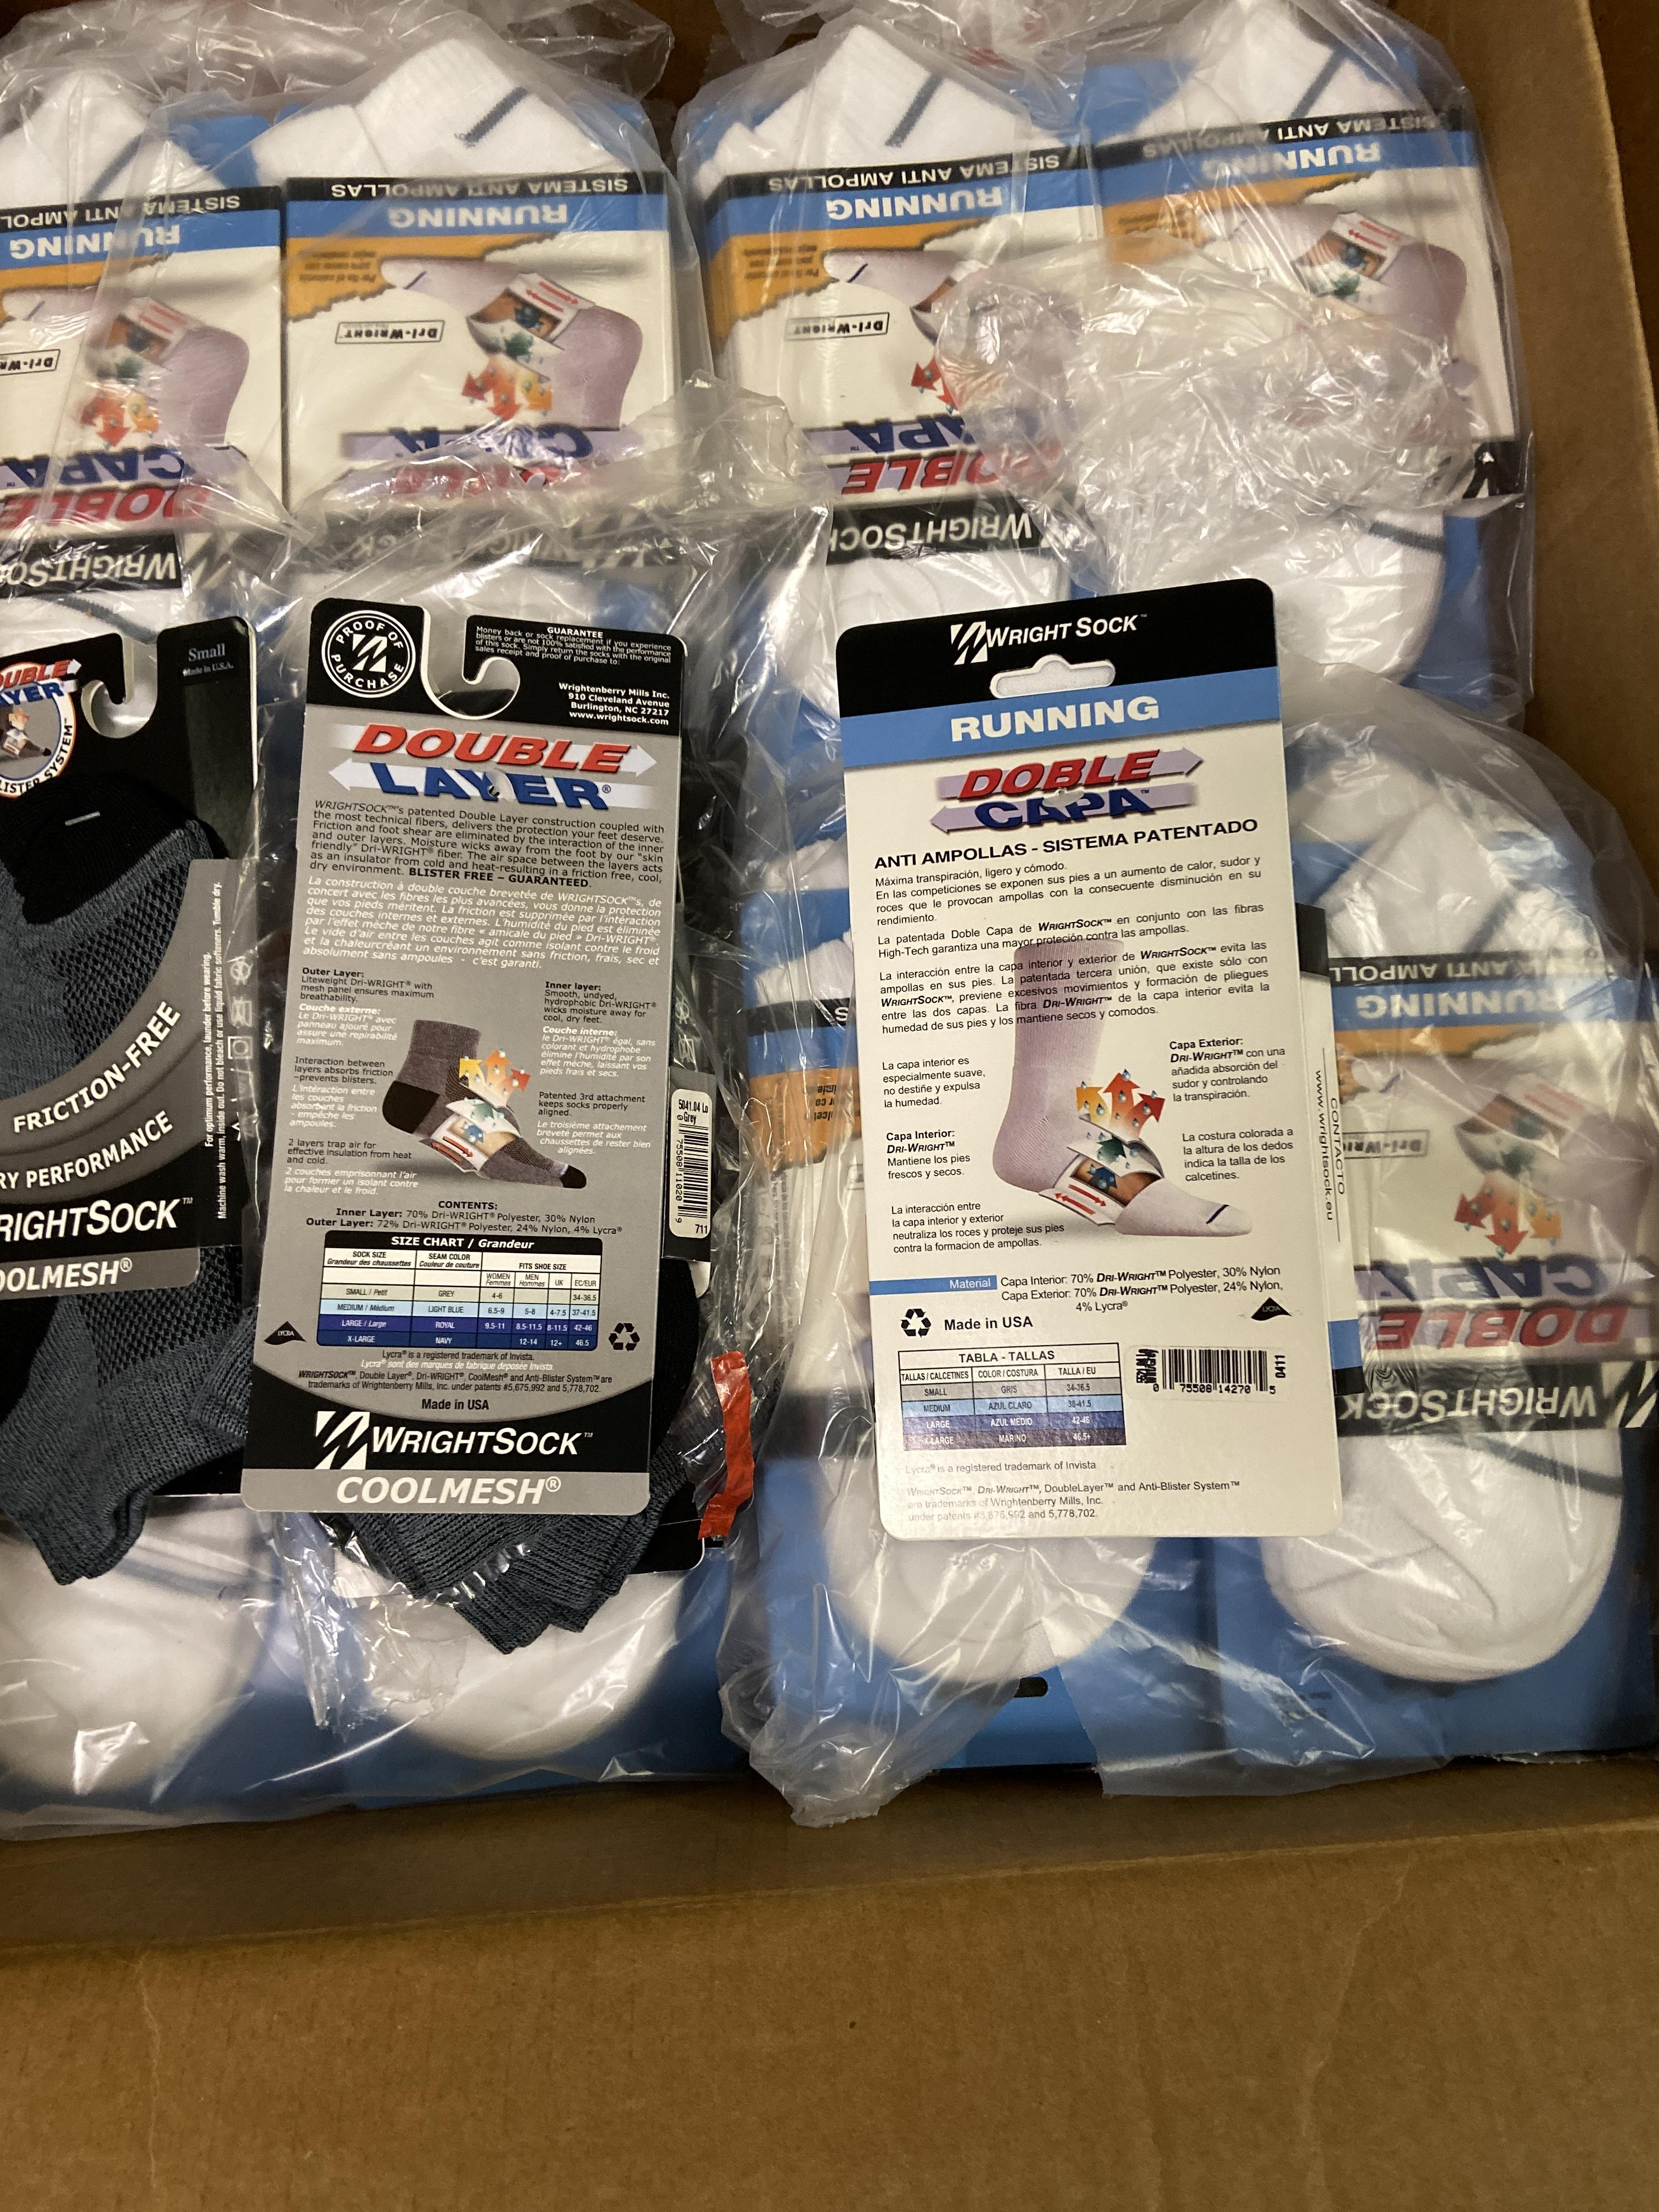 500+ packs of New Socks, Wrightsock Various Styles, Double Layer, Various Colors White/Black/Etc - Image 4 of 7